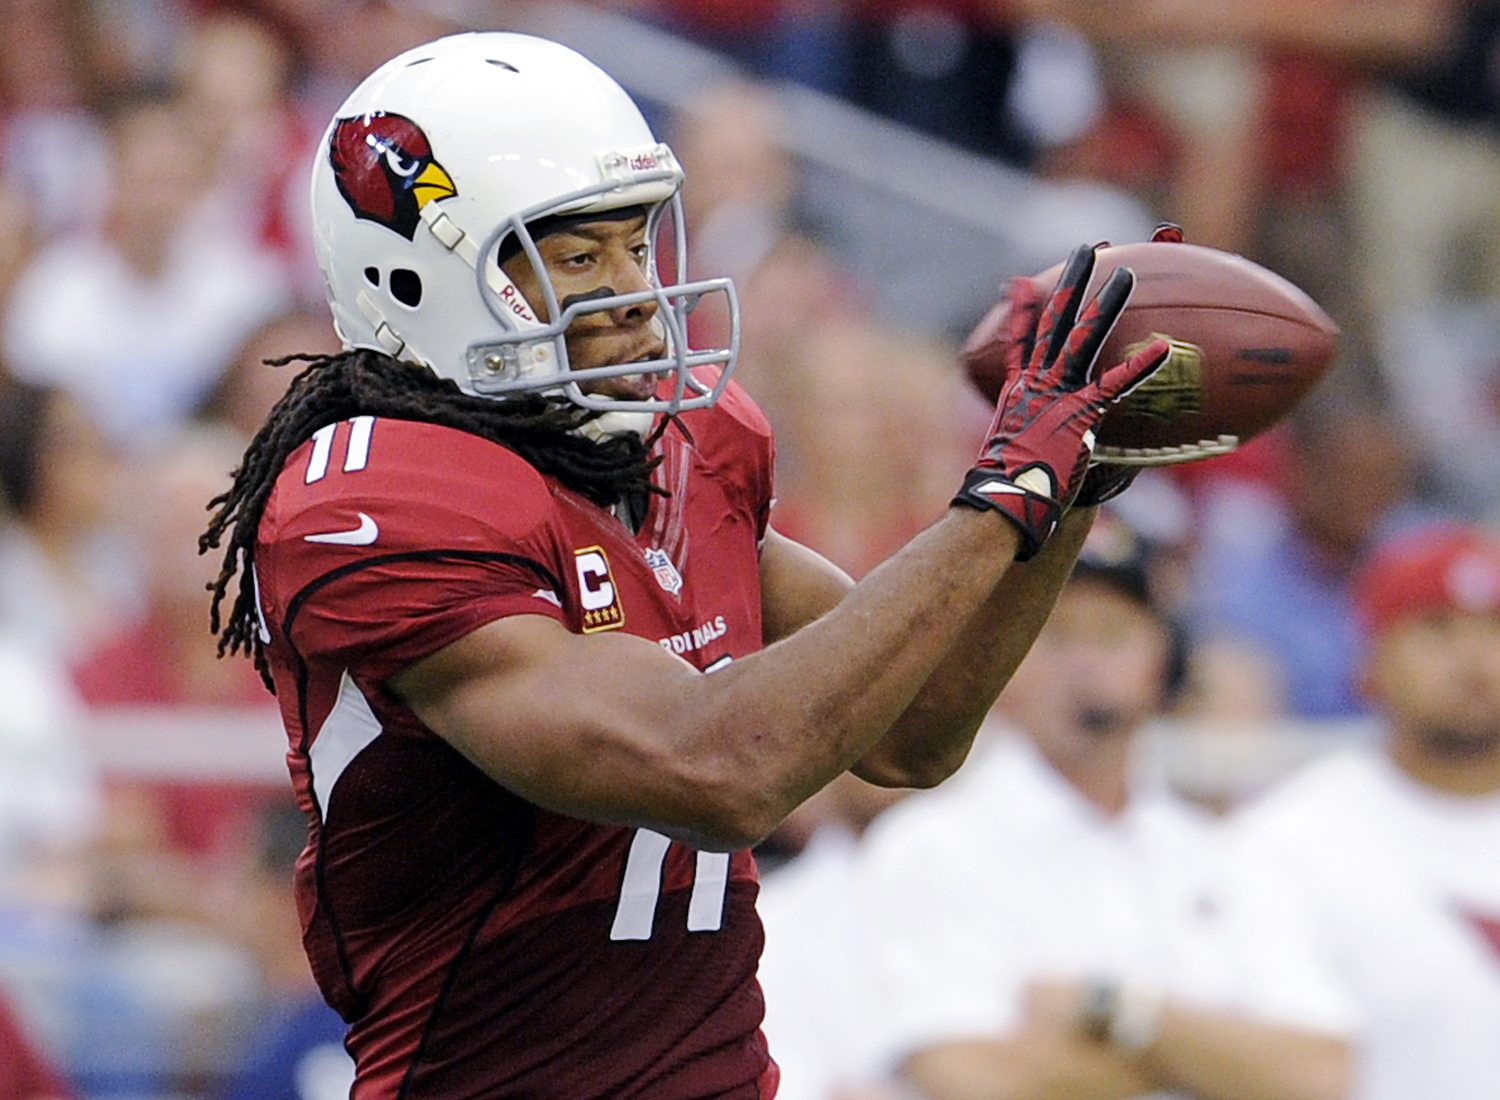 2004 NFL Draft, first round, Arizona Cardinals -- Fitzgerald has played 11 seasons for the Arizona Cardinals (2004-14). He is a eight-time Pro Bowl selection and was a vital part of helping the Cardinals advance to Super Bowl XLIII. (AP Photo/Greg Trott)